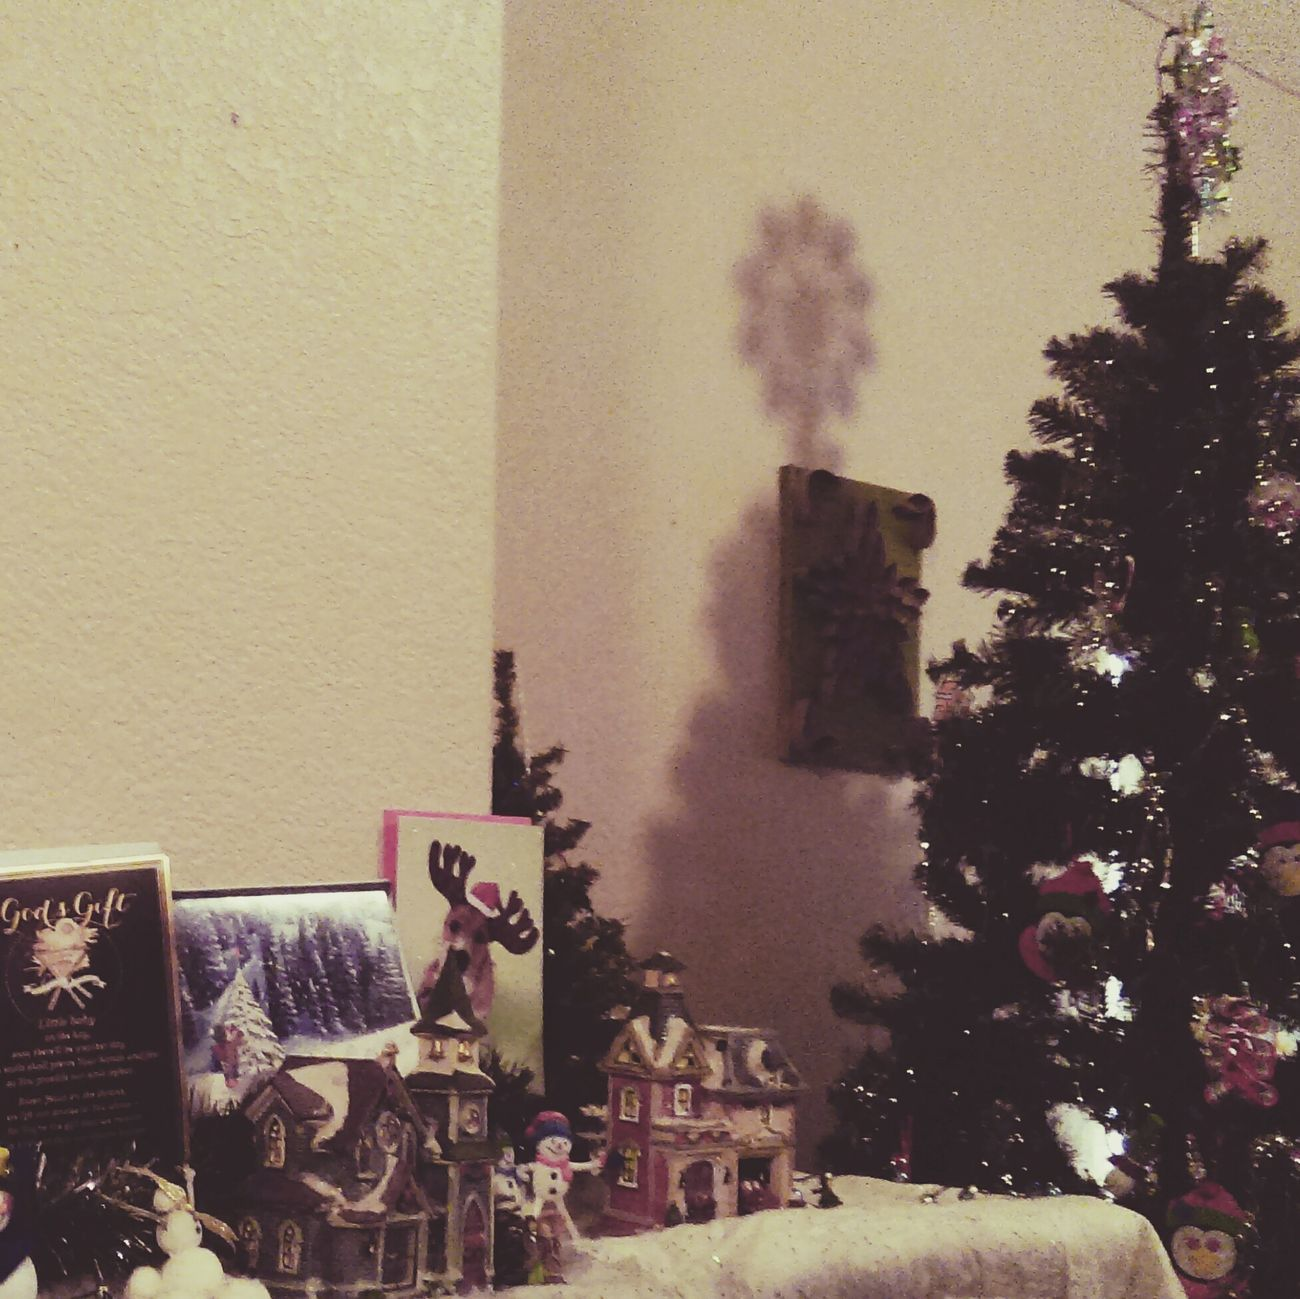 Taking down the HolidayDecorations ... Don't judge I was going to leave them up until Feb 2nd... Holiday Holidaydecor